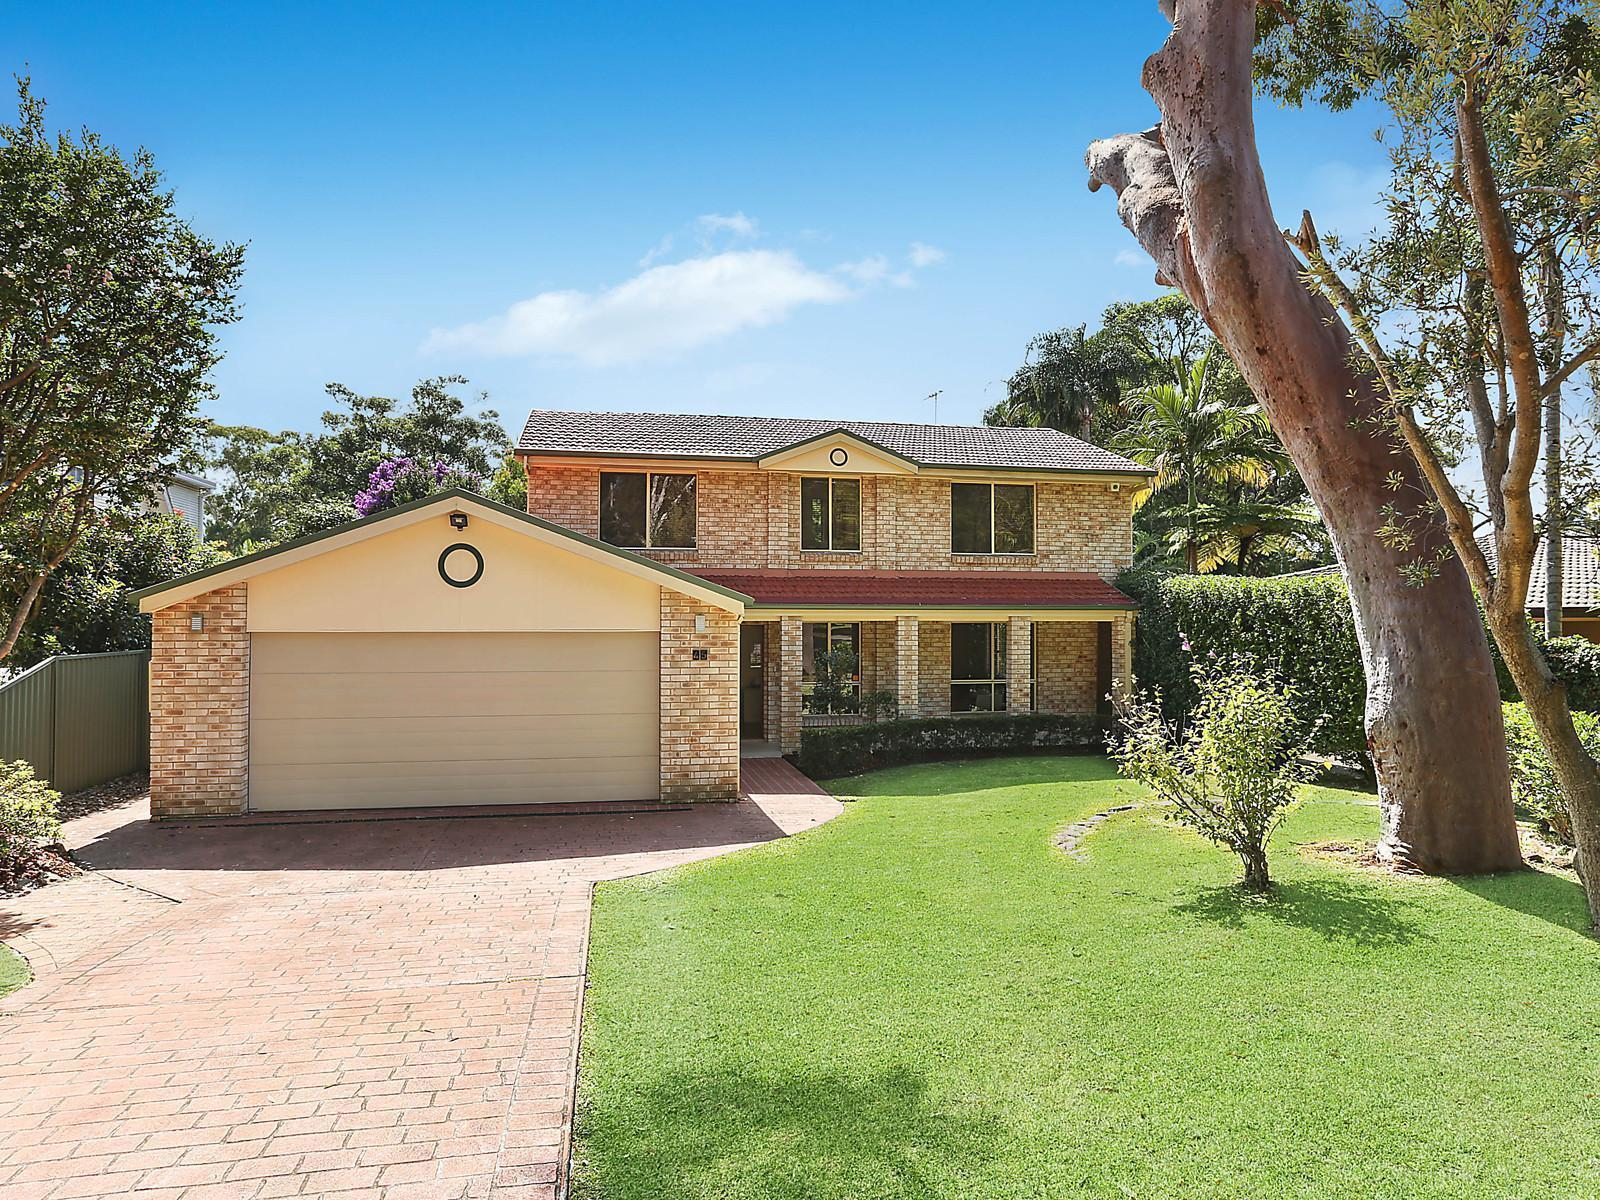 Picture of 45 Caringbah Road, Caringbah South